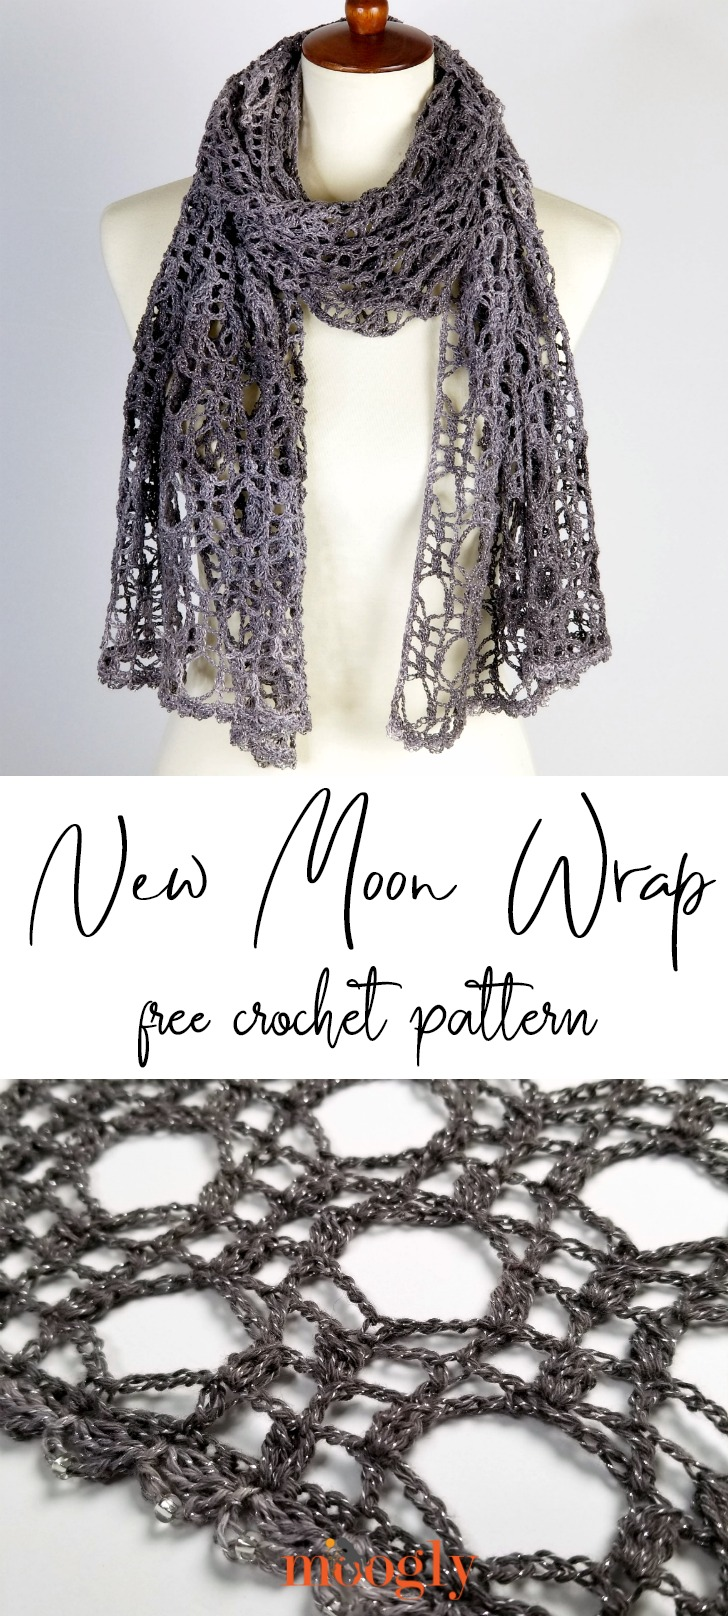 New Moon Shawl - get the free crochet pattern on Mooglyblog.com